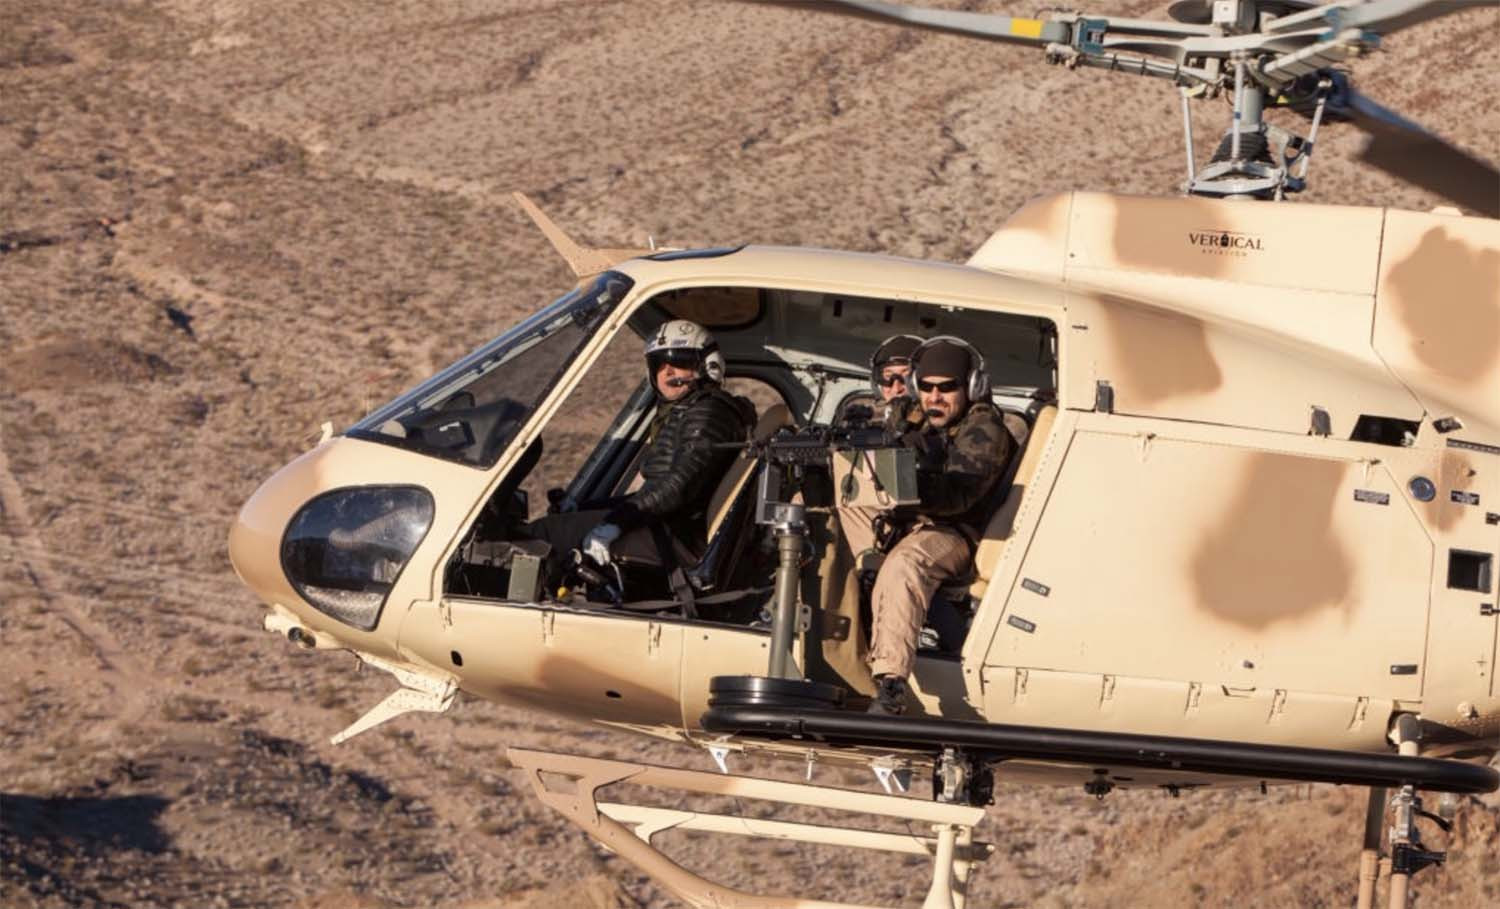 Shoot-from-a-helicopter